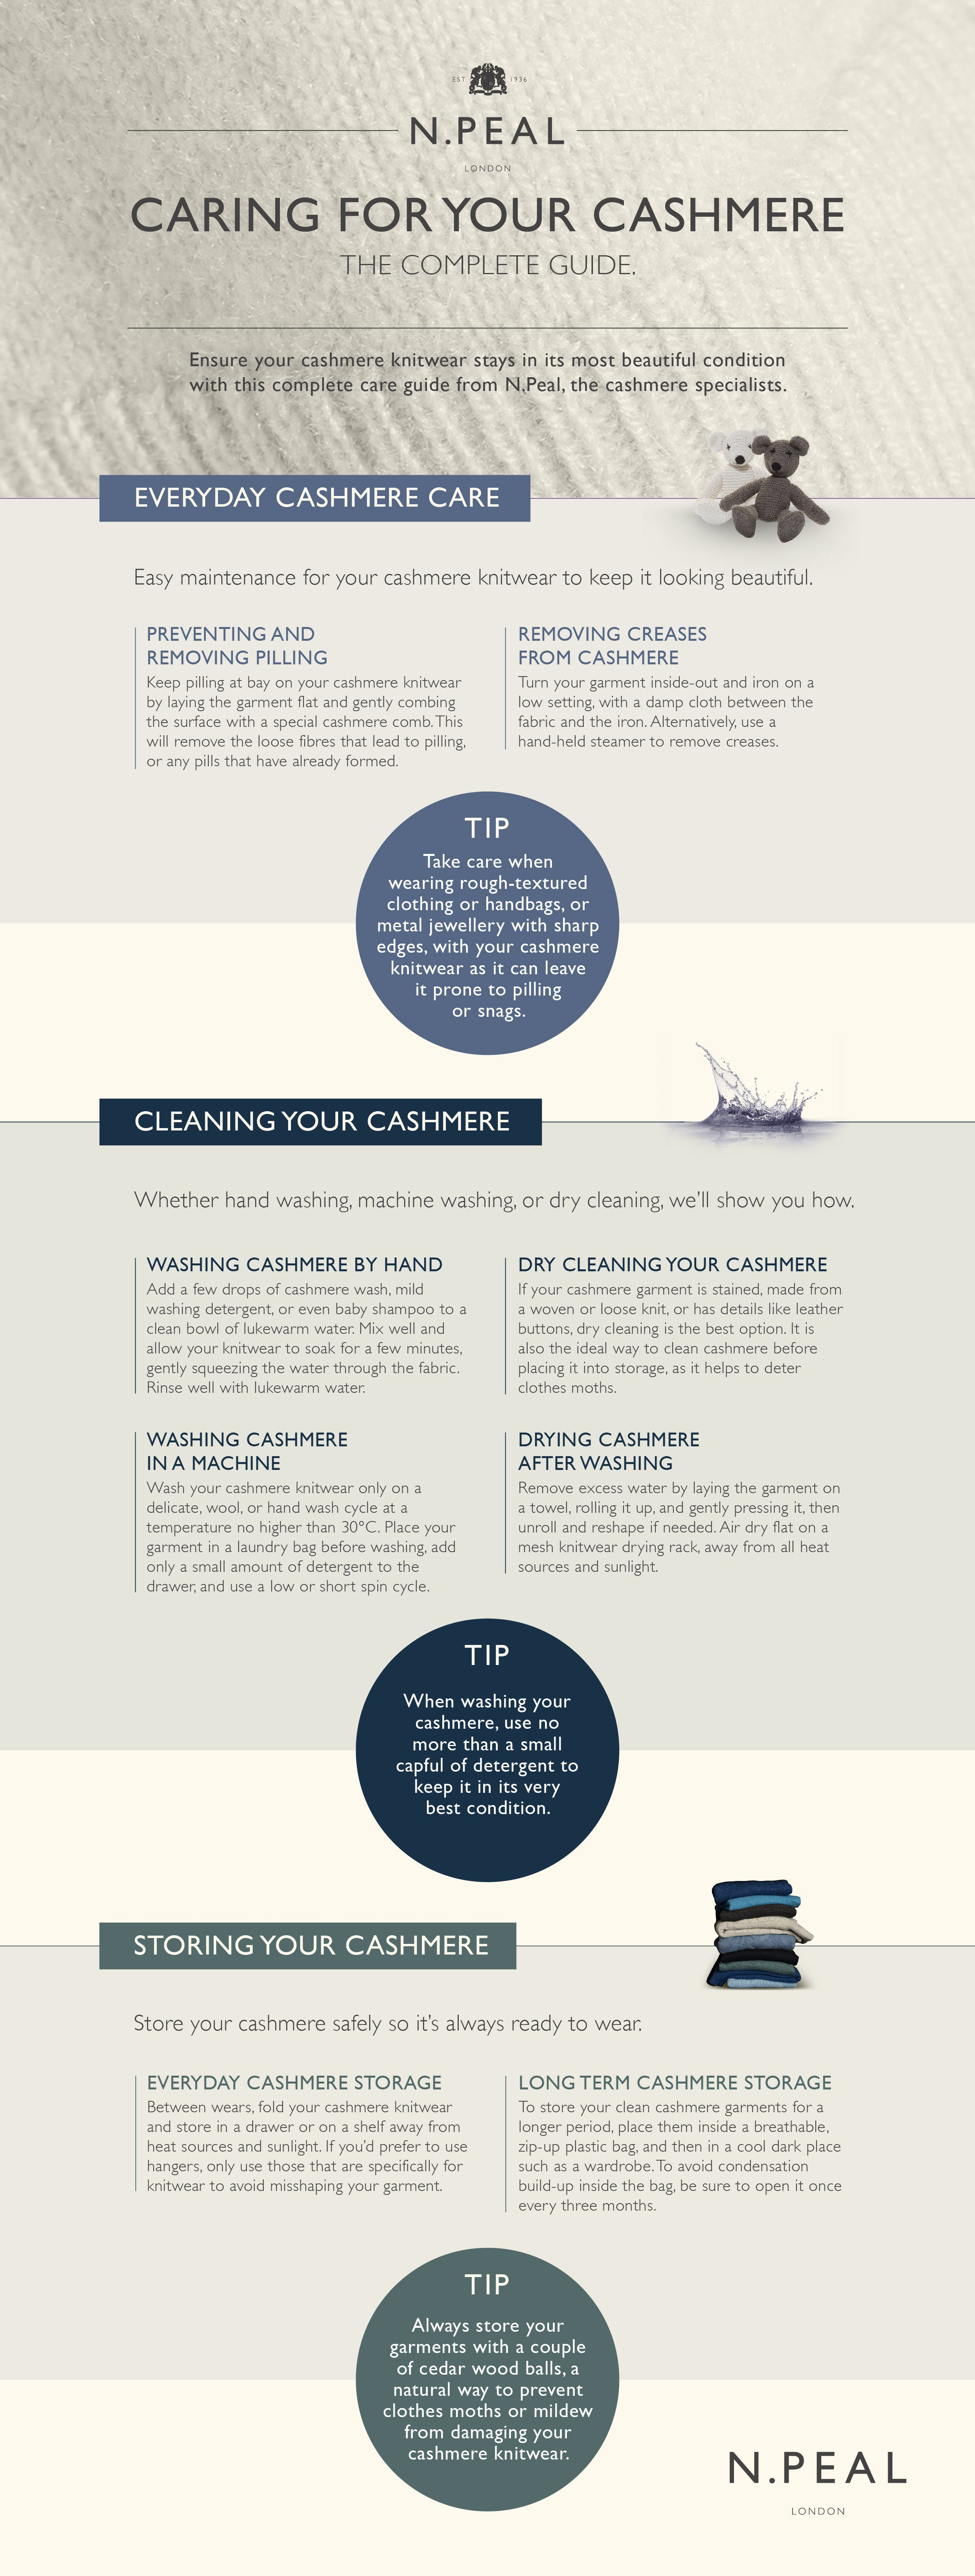 Cashmere Care Infographic from N.Peal